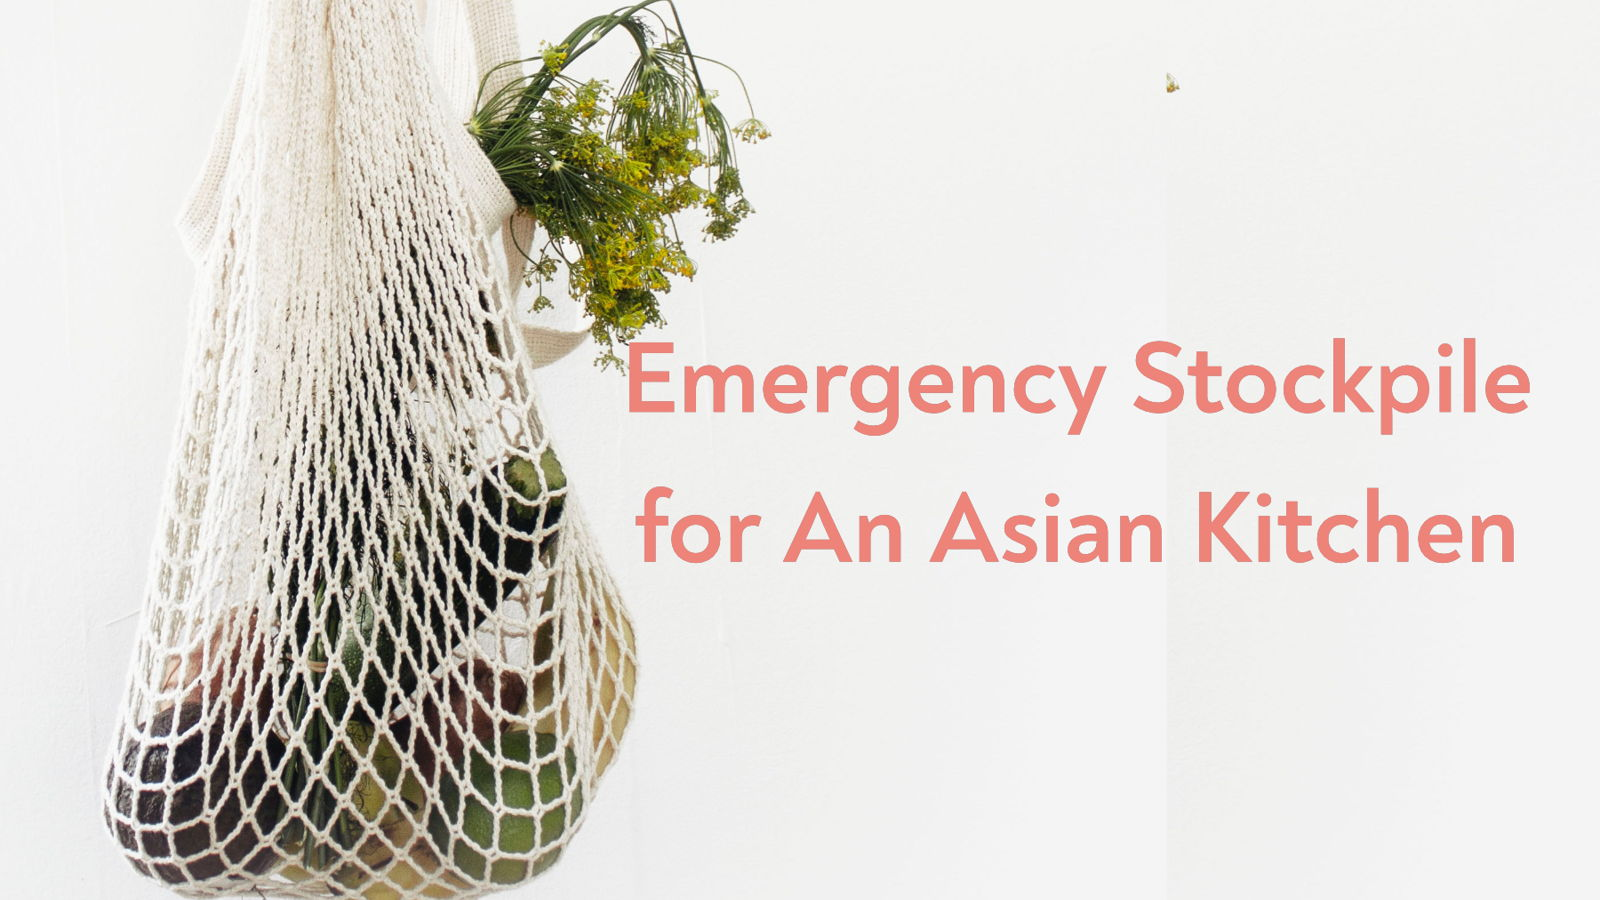 Emergency Stockpile for An Asian Kitchen